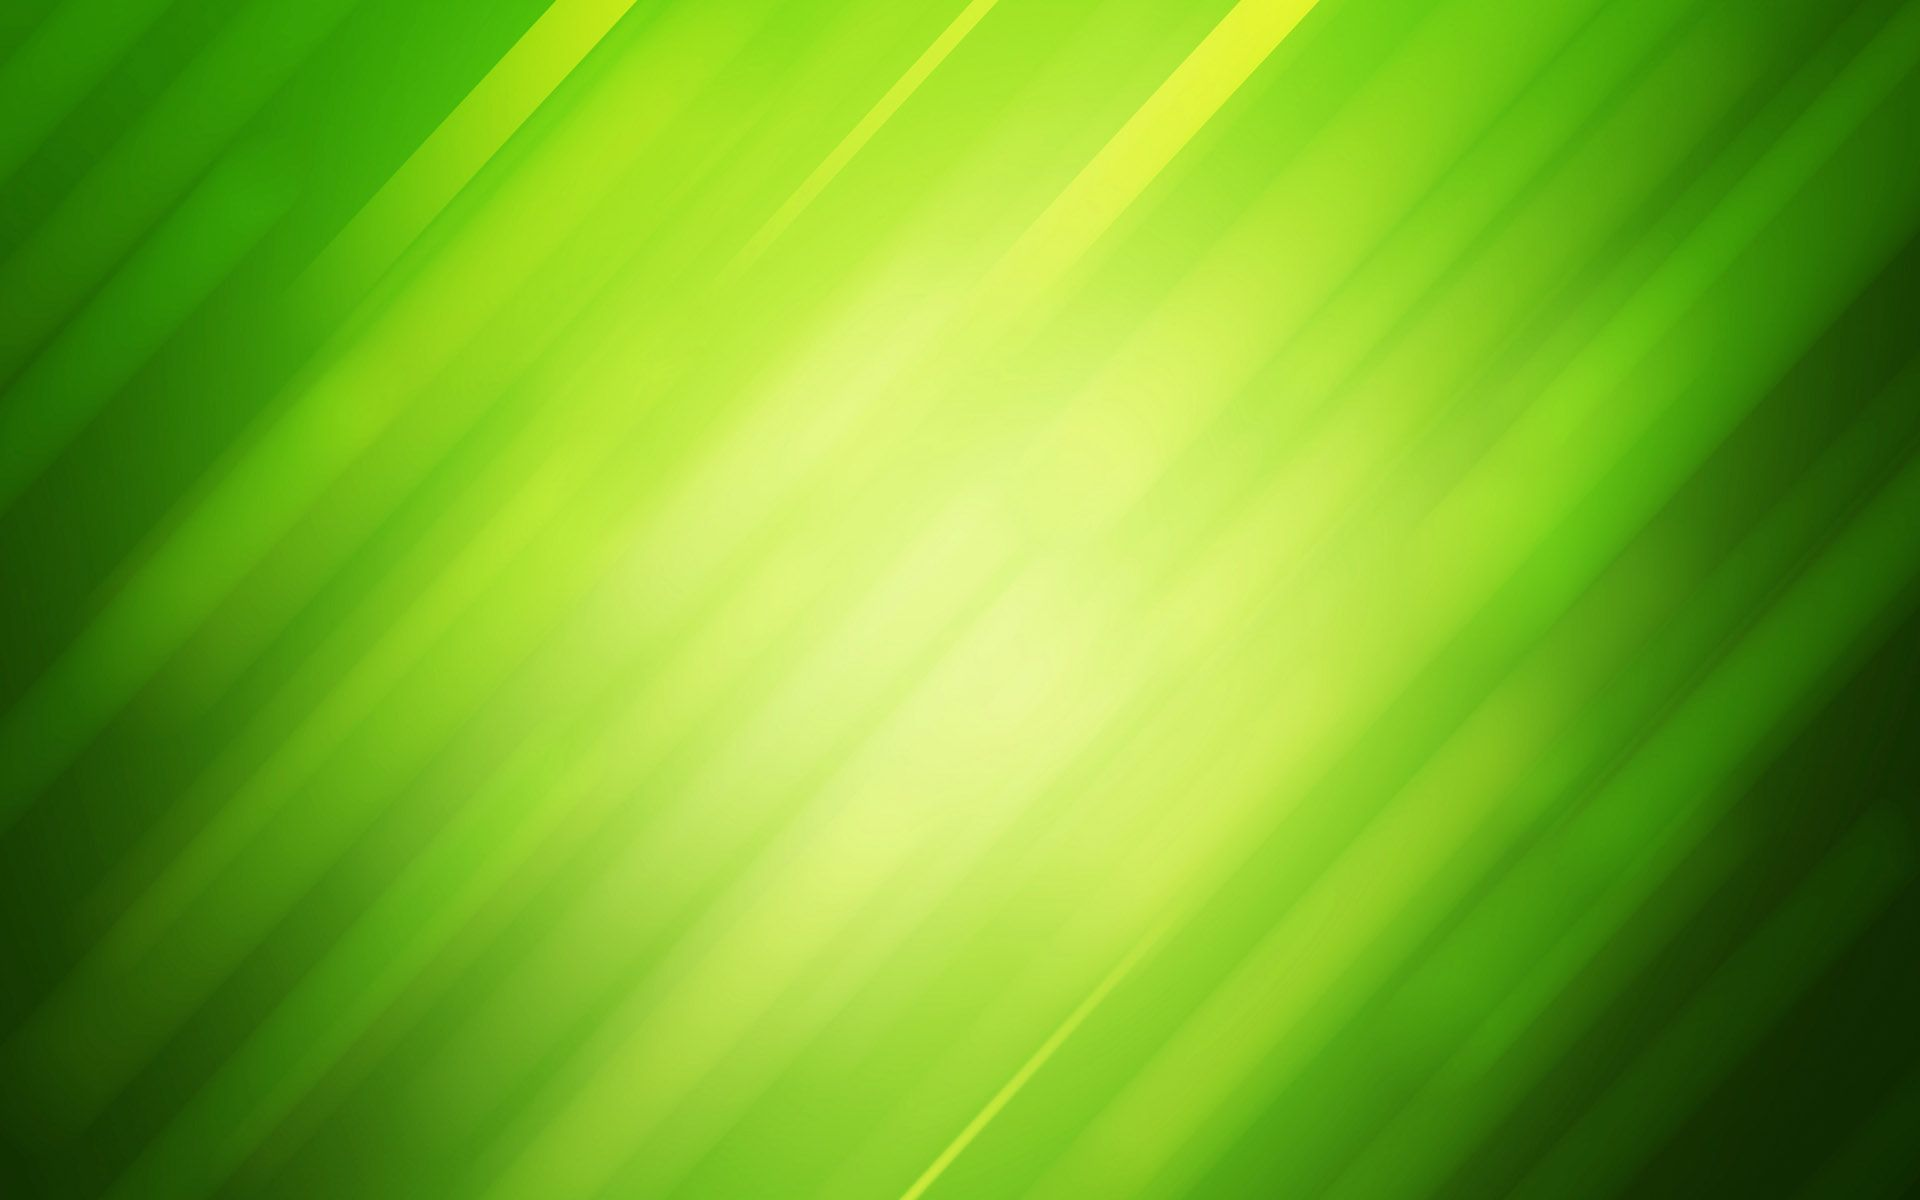 Cool Green Wallpaper Wallpapersafari Vector Colorful Images In